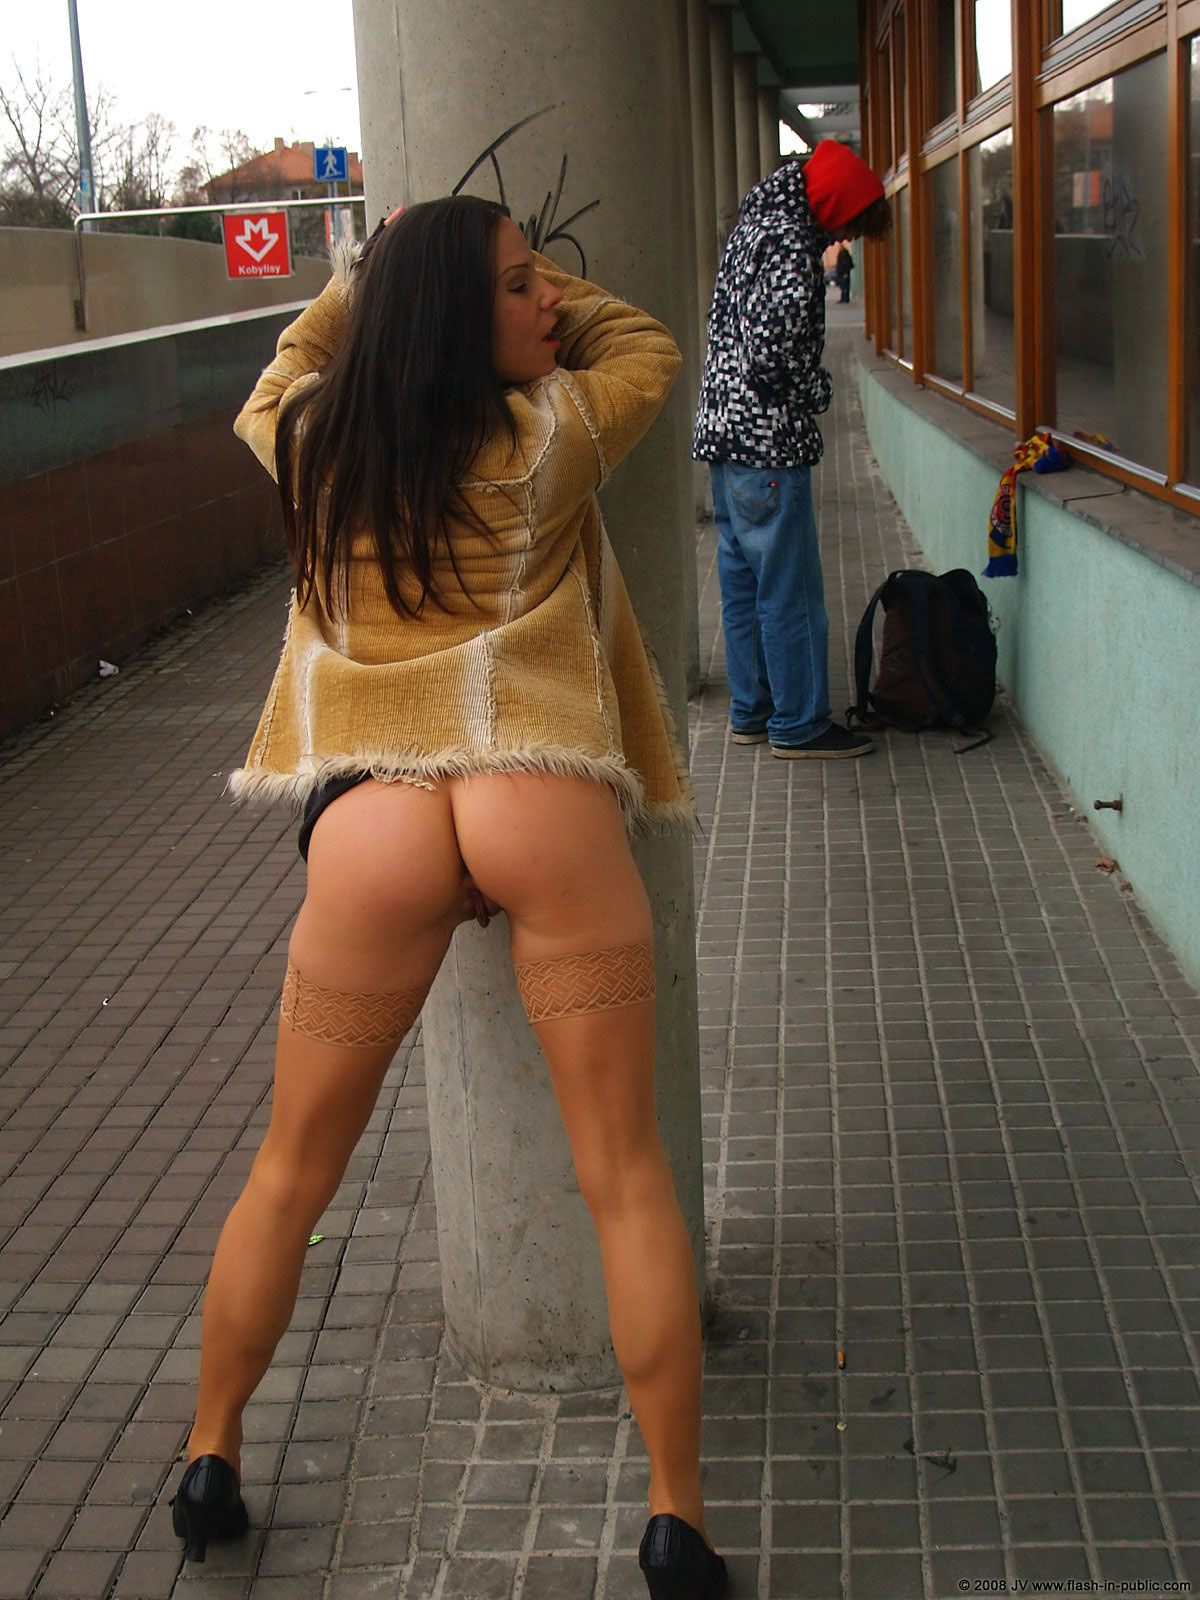 alexandra-g-bottomless-stockings-flash-in-public-29